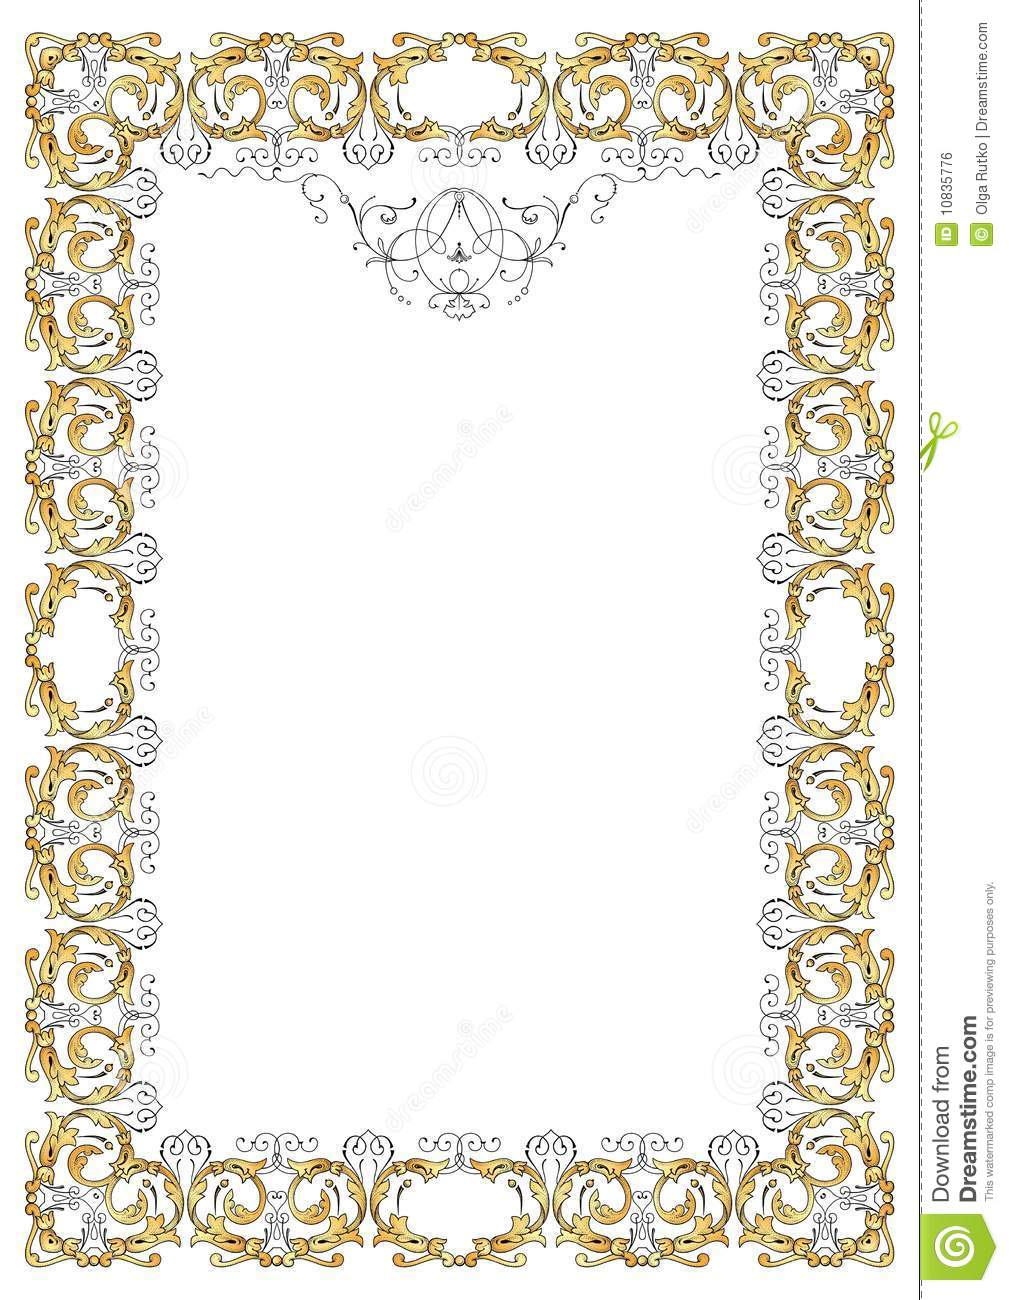 Royalty Free Stock Image  Ornate frame vectorOrnate Gold Frame Vector